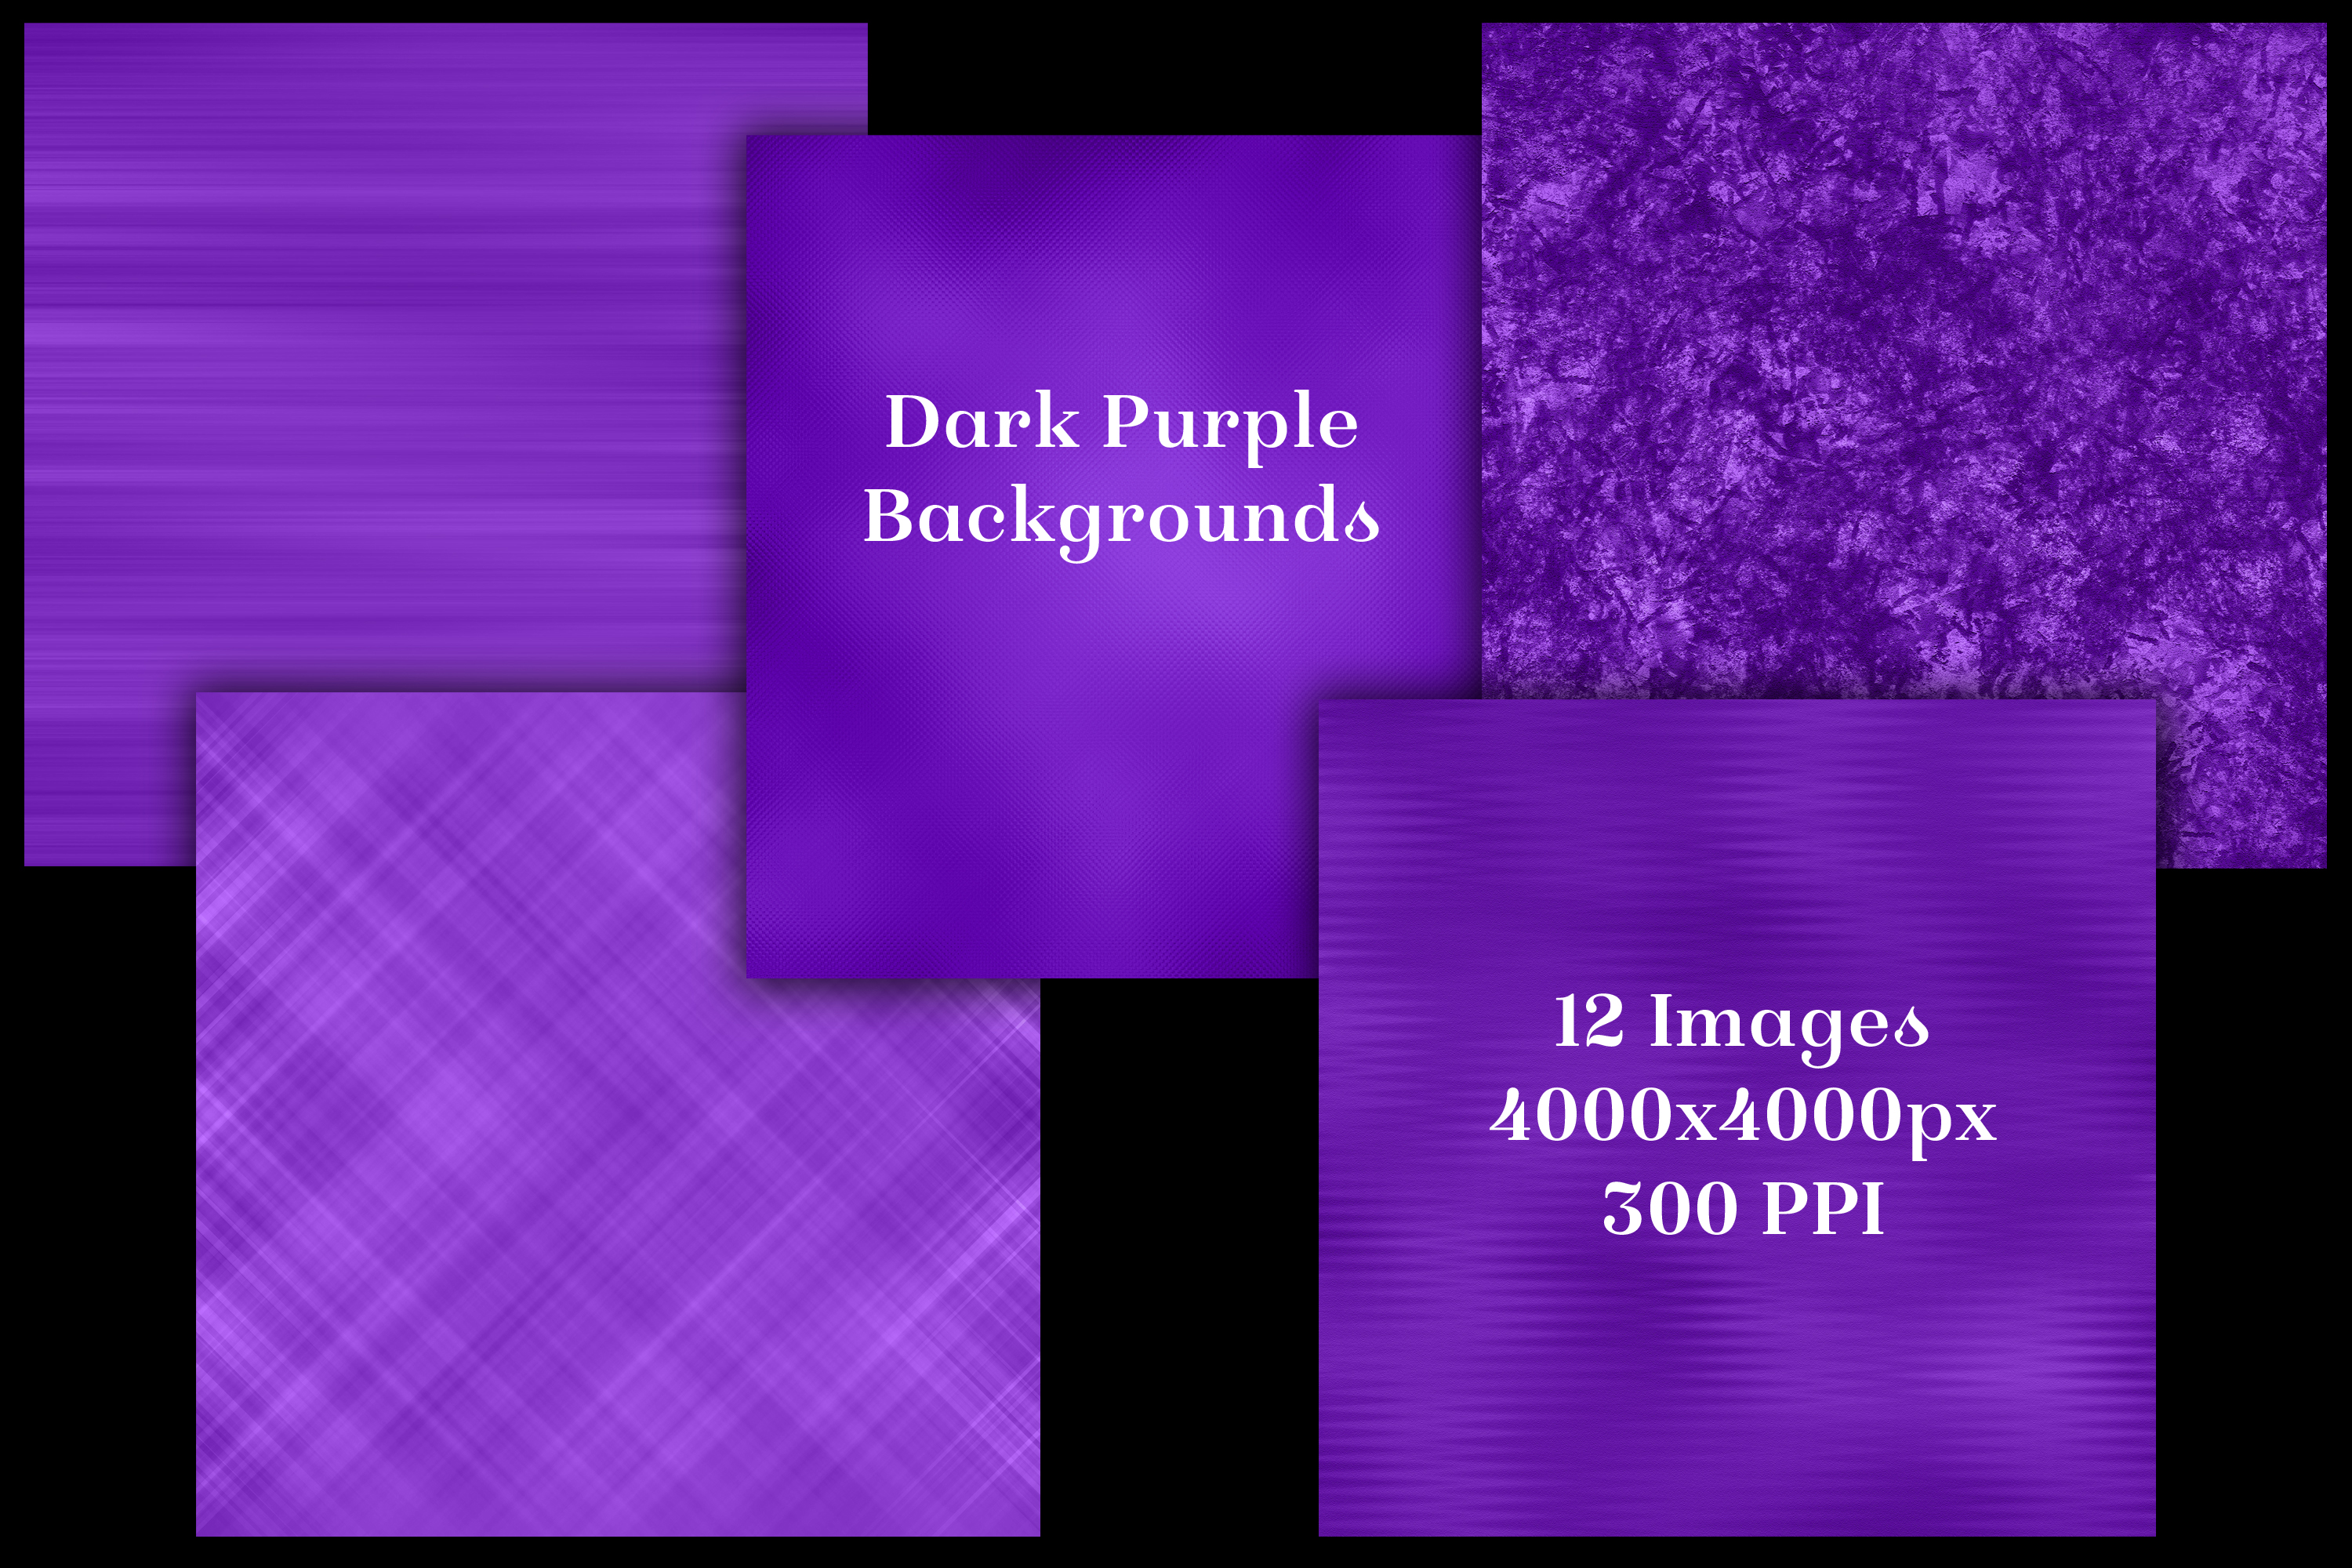 Dark Purple Backgrounds - 12 Image Set example image 2